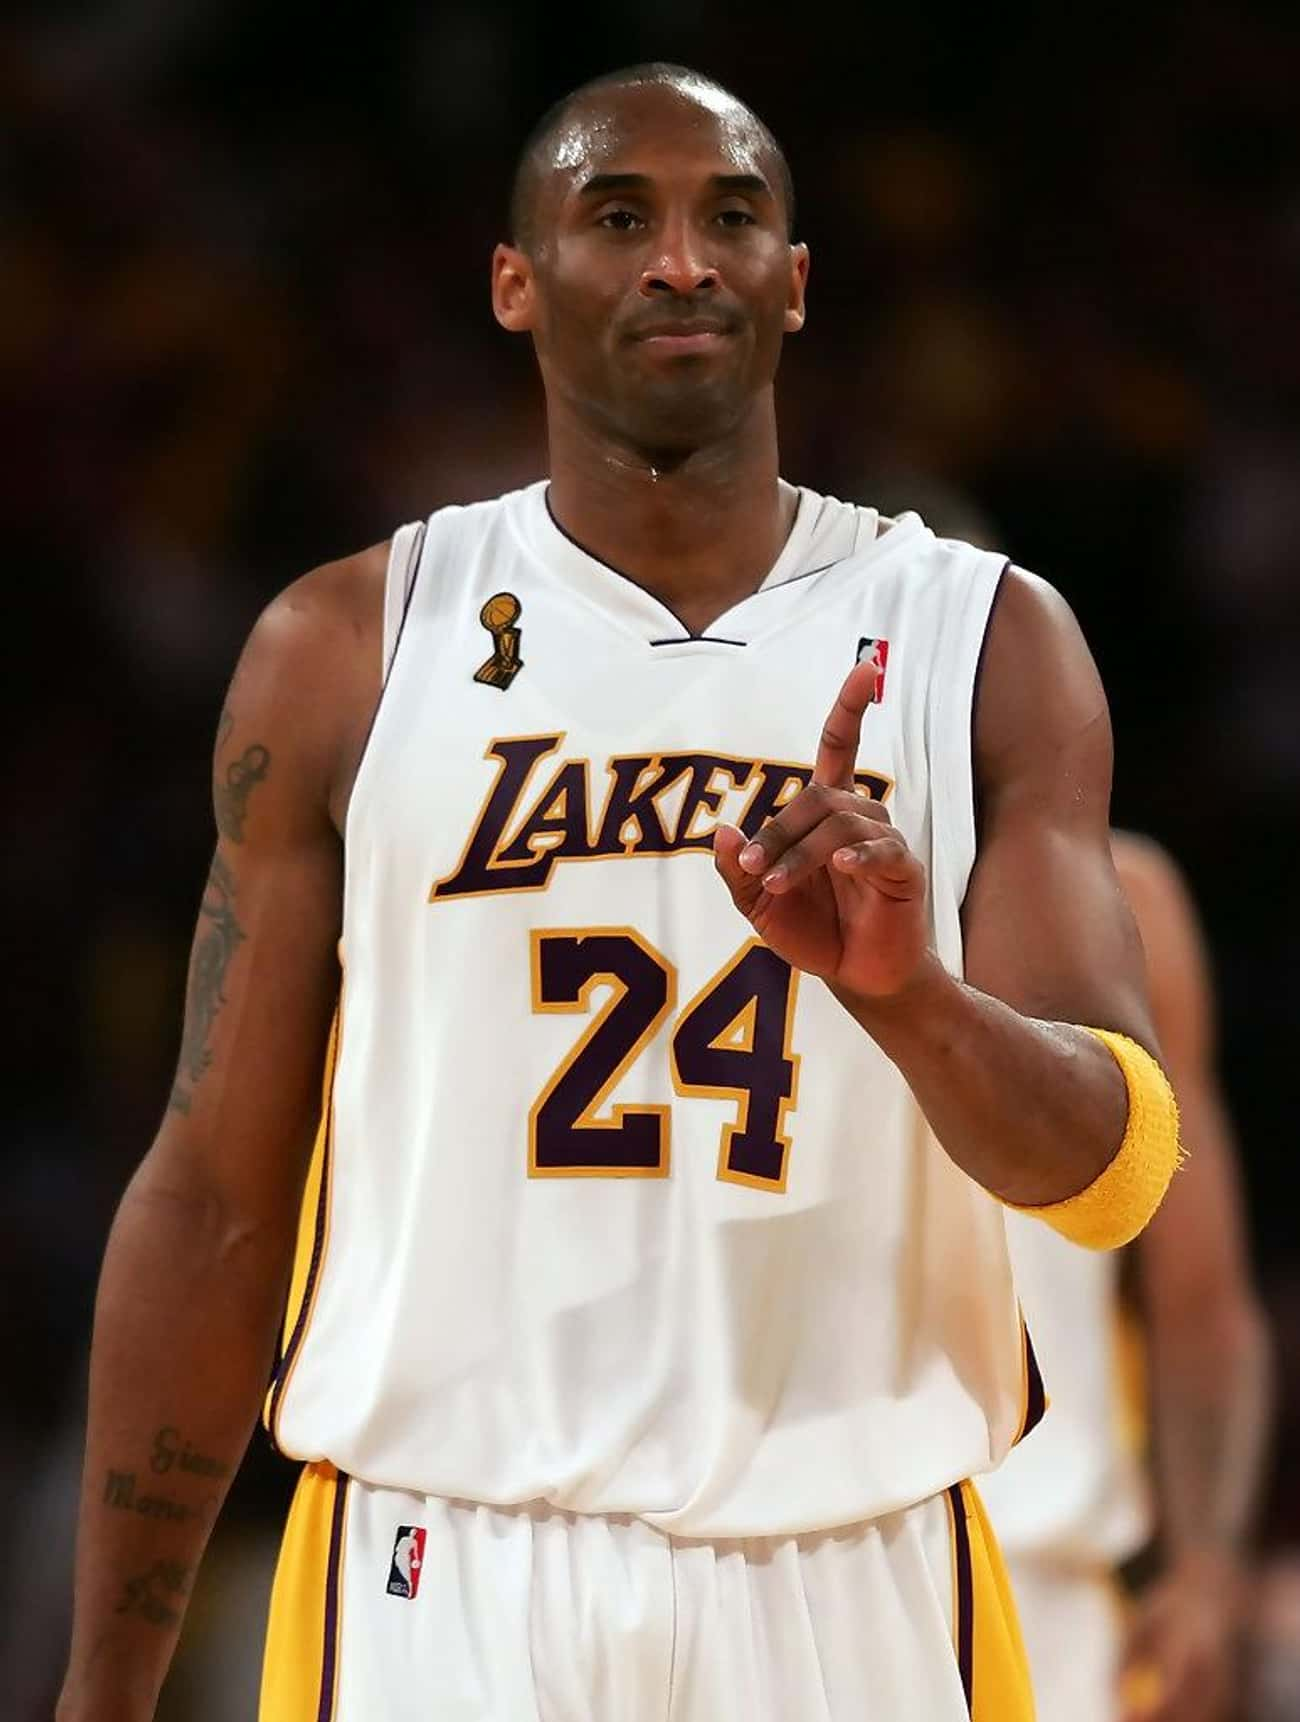 Gianna Maria-Onore is listed (or ranked) 1 on the list Kobe Bryant Tattoos